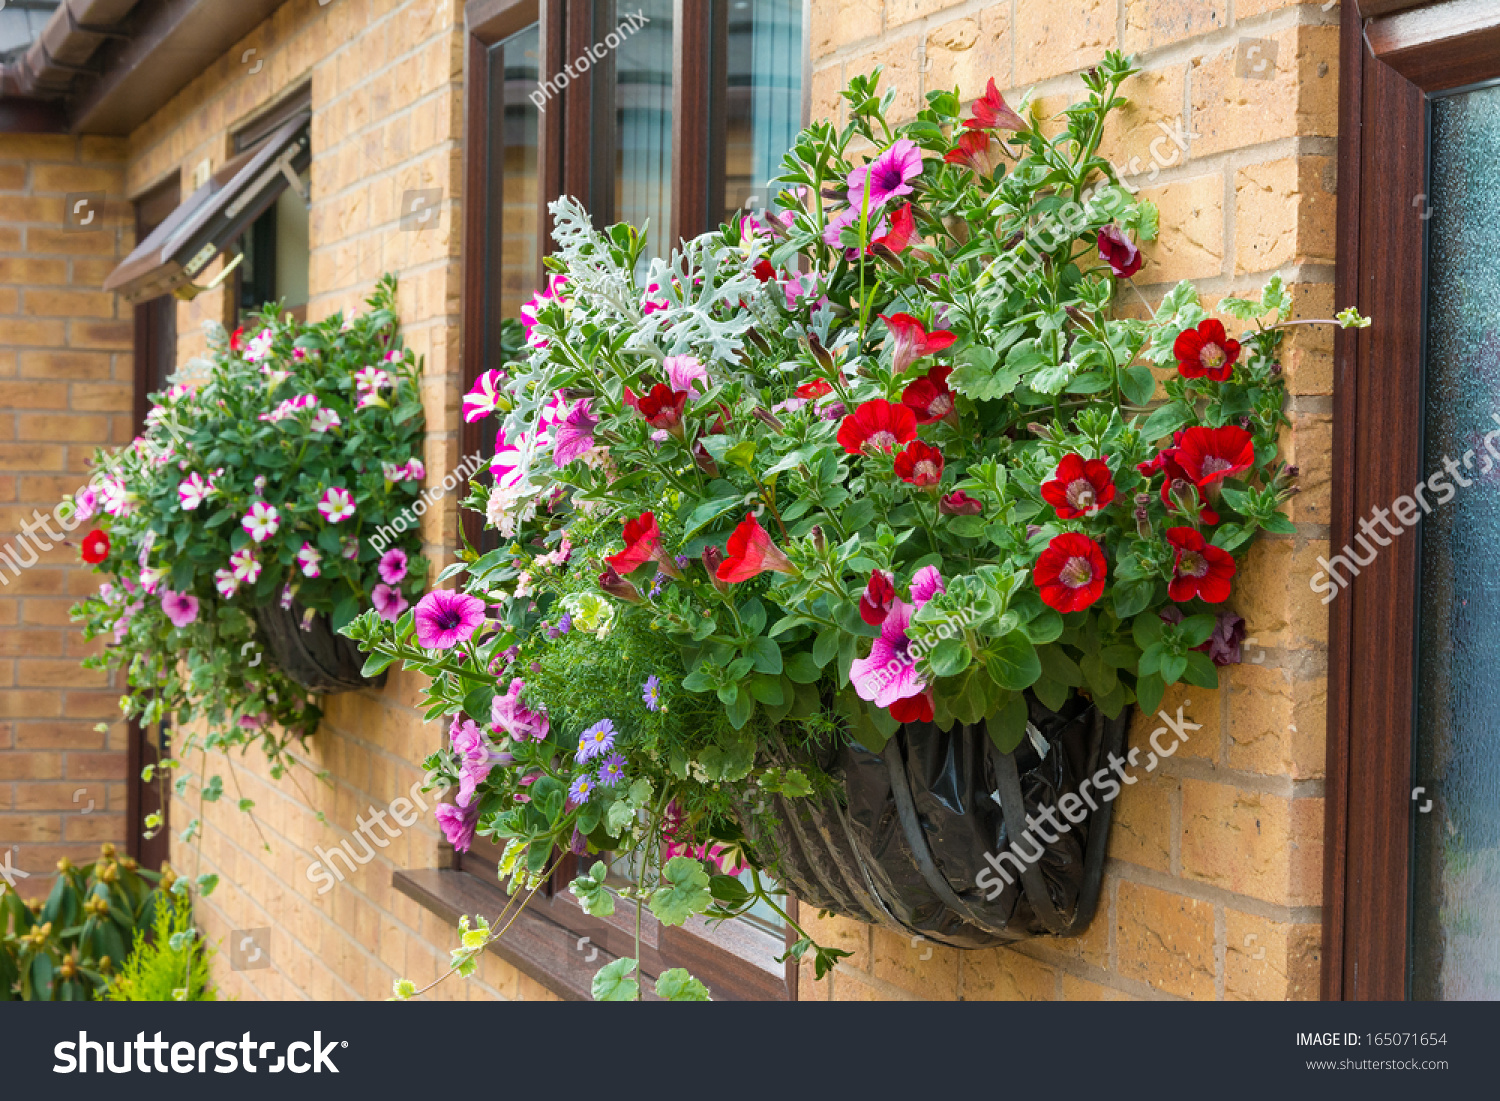 Range Flower Baskets : Wall mounted hanging baskets with a range of summer